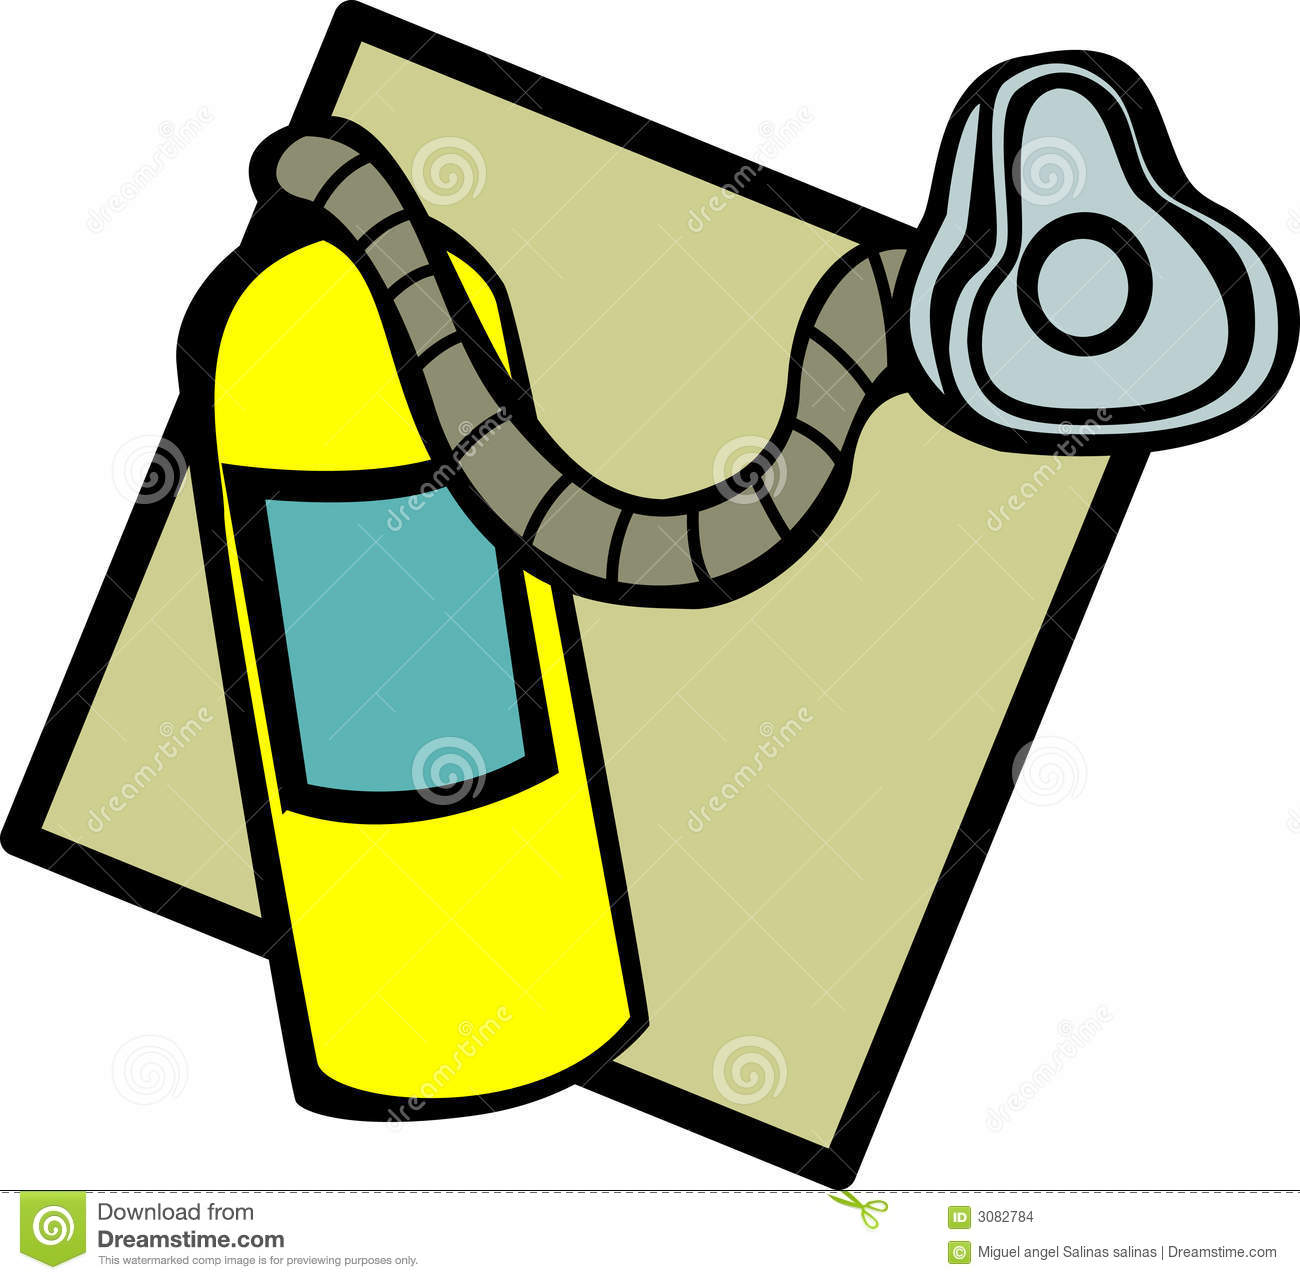 500050 likewise Water tank clipart likewise Post Game Oxygen Were Still Alive Were Heading Back To La also Boys Astronaut Suit together with Alert Woman In Scrubs Dashes Off In A Hurriedly. on oxygen tank clip art